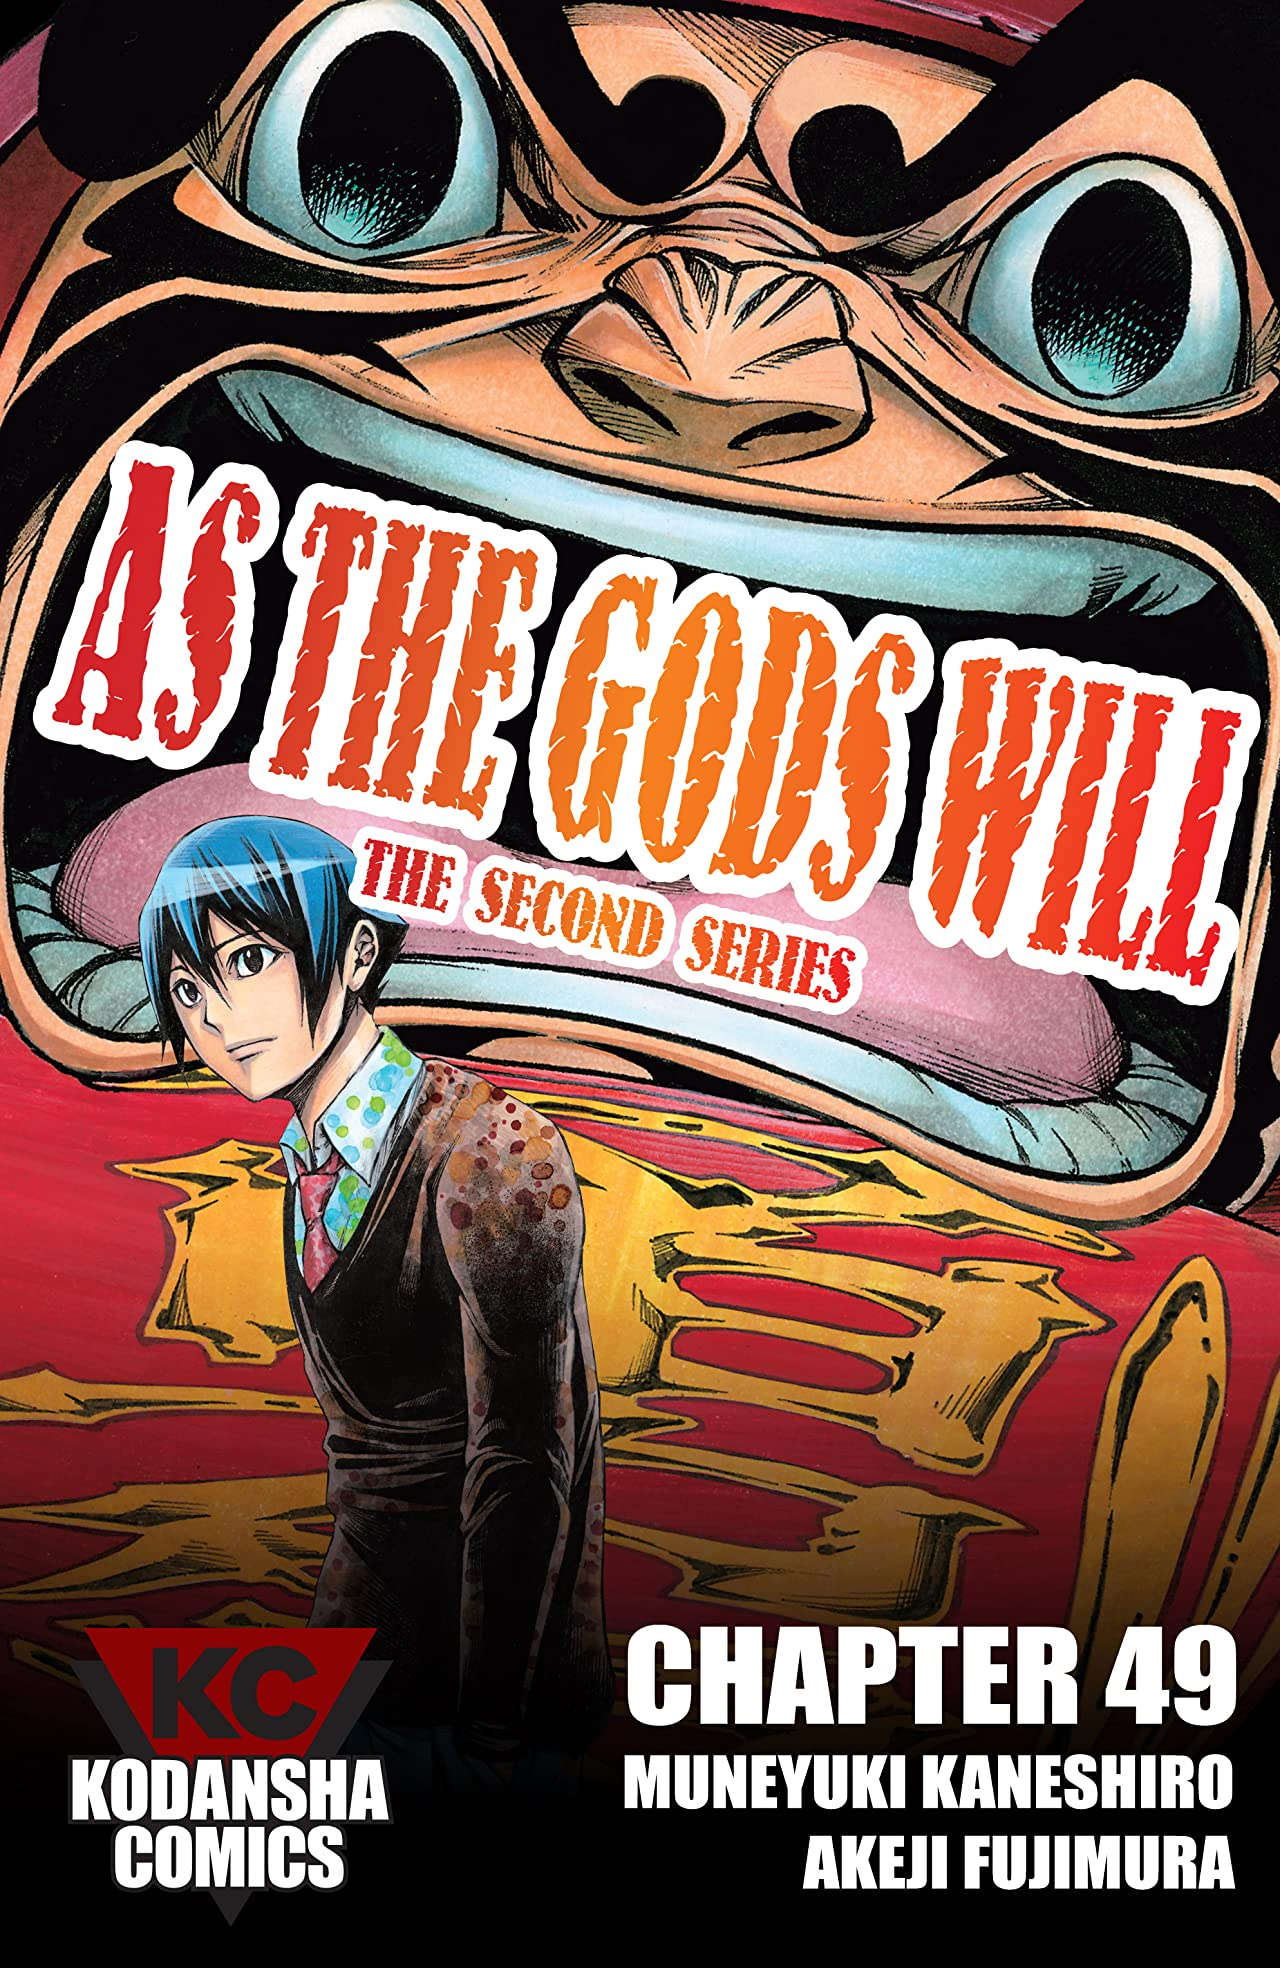 As The Gods Will: The Second Series #49